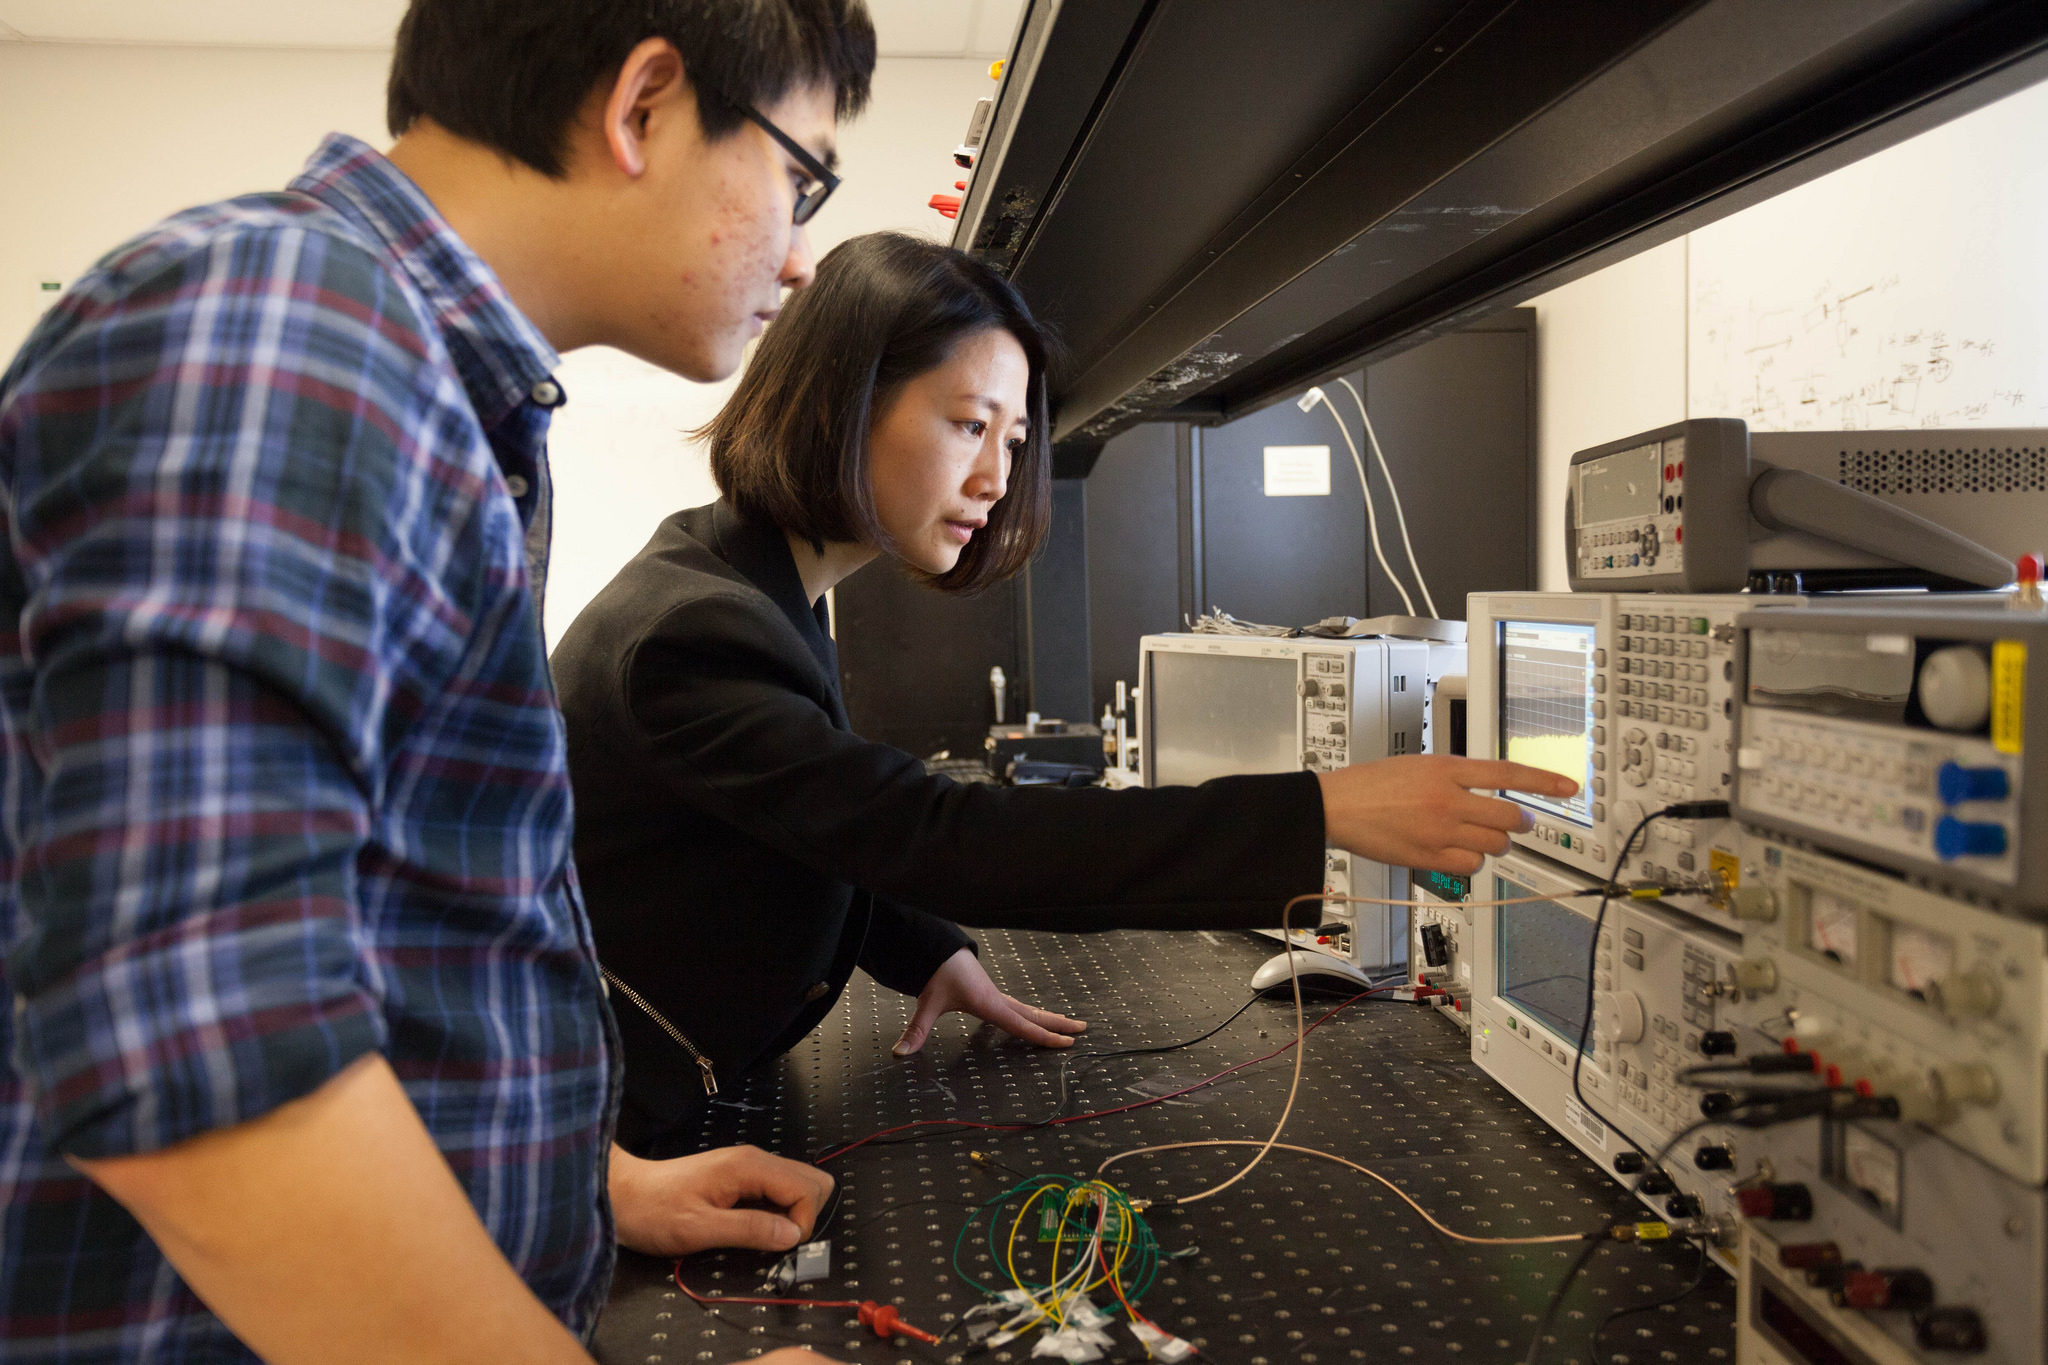 Ece Uc Davis Electronic Circuit Diagram Software Circuits Groups Interests Are In Analog And Digital Design Specifically Focusing On Designs For Integrated Cmos